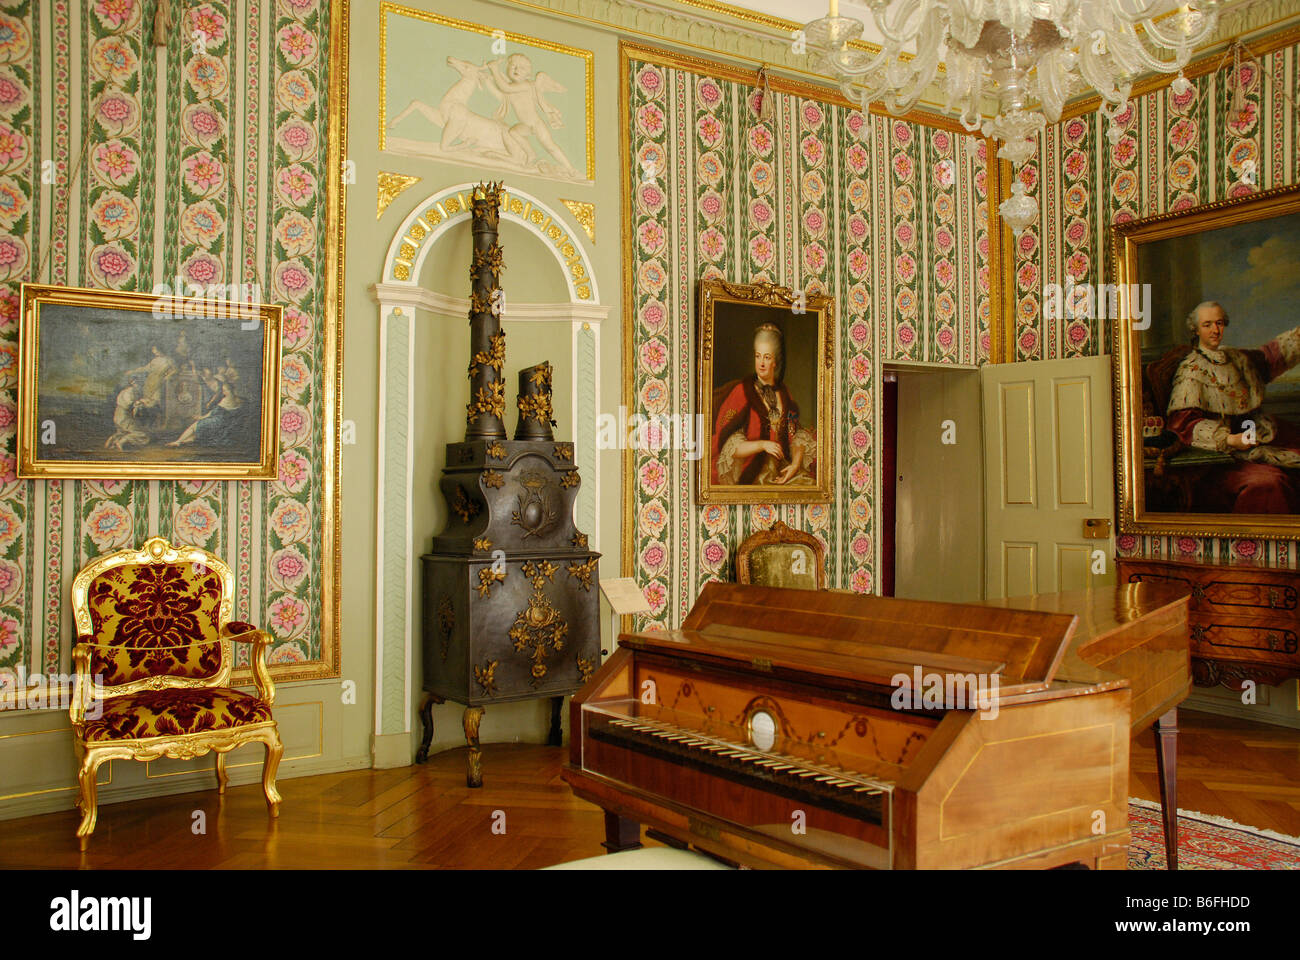 Rococo room containing a harpsichord and a wood-burning stove, in the Kurpfaelzischen Museum, Heidelberg, Baden - Stock Image